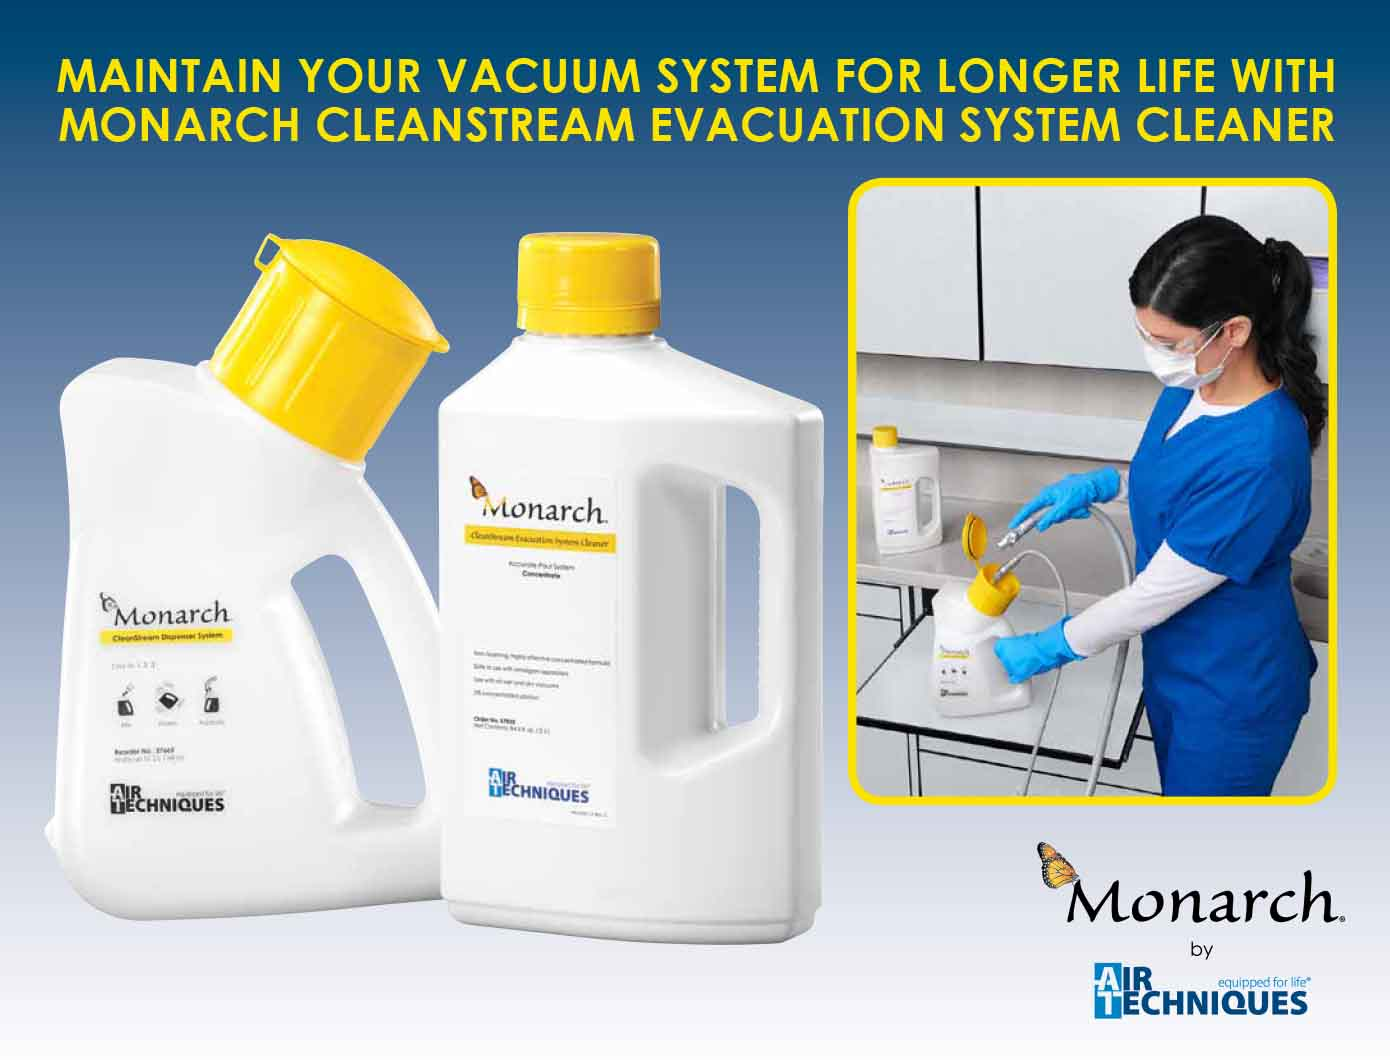 Monarch Cleanstream Evacuation System Cleaner Air Techniques